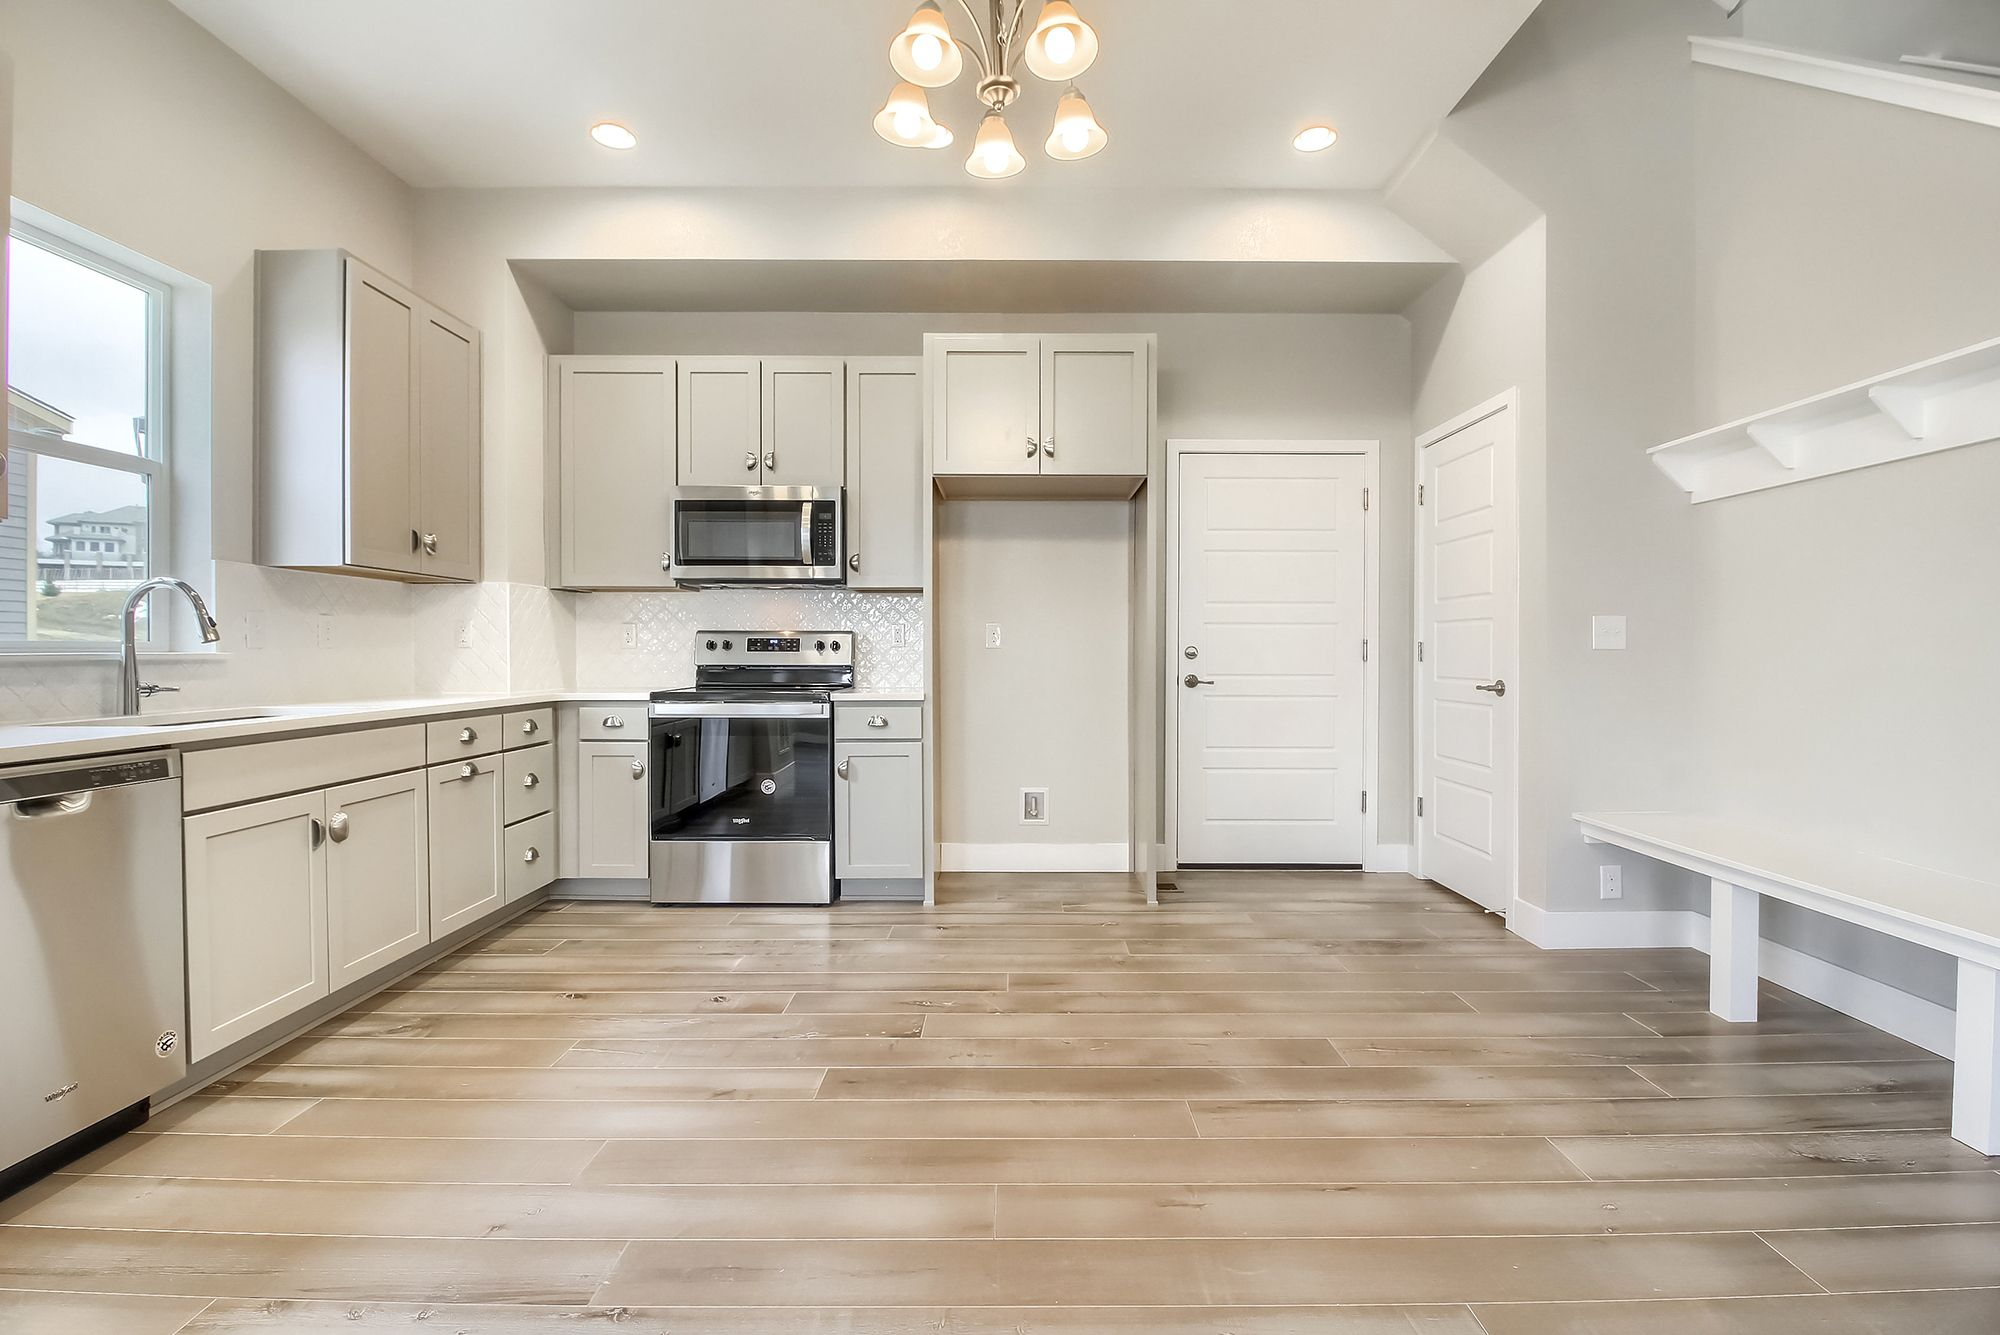 Kitchen featured in the Affinity By Thrive Home Builders in Boulder-Longmont, CO